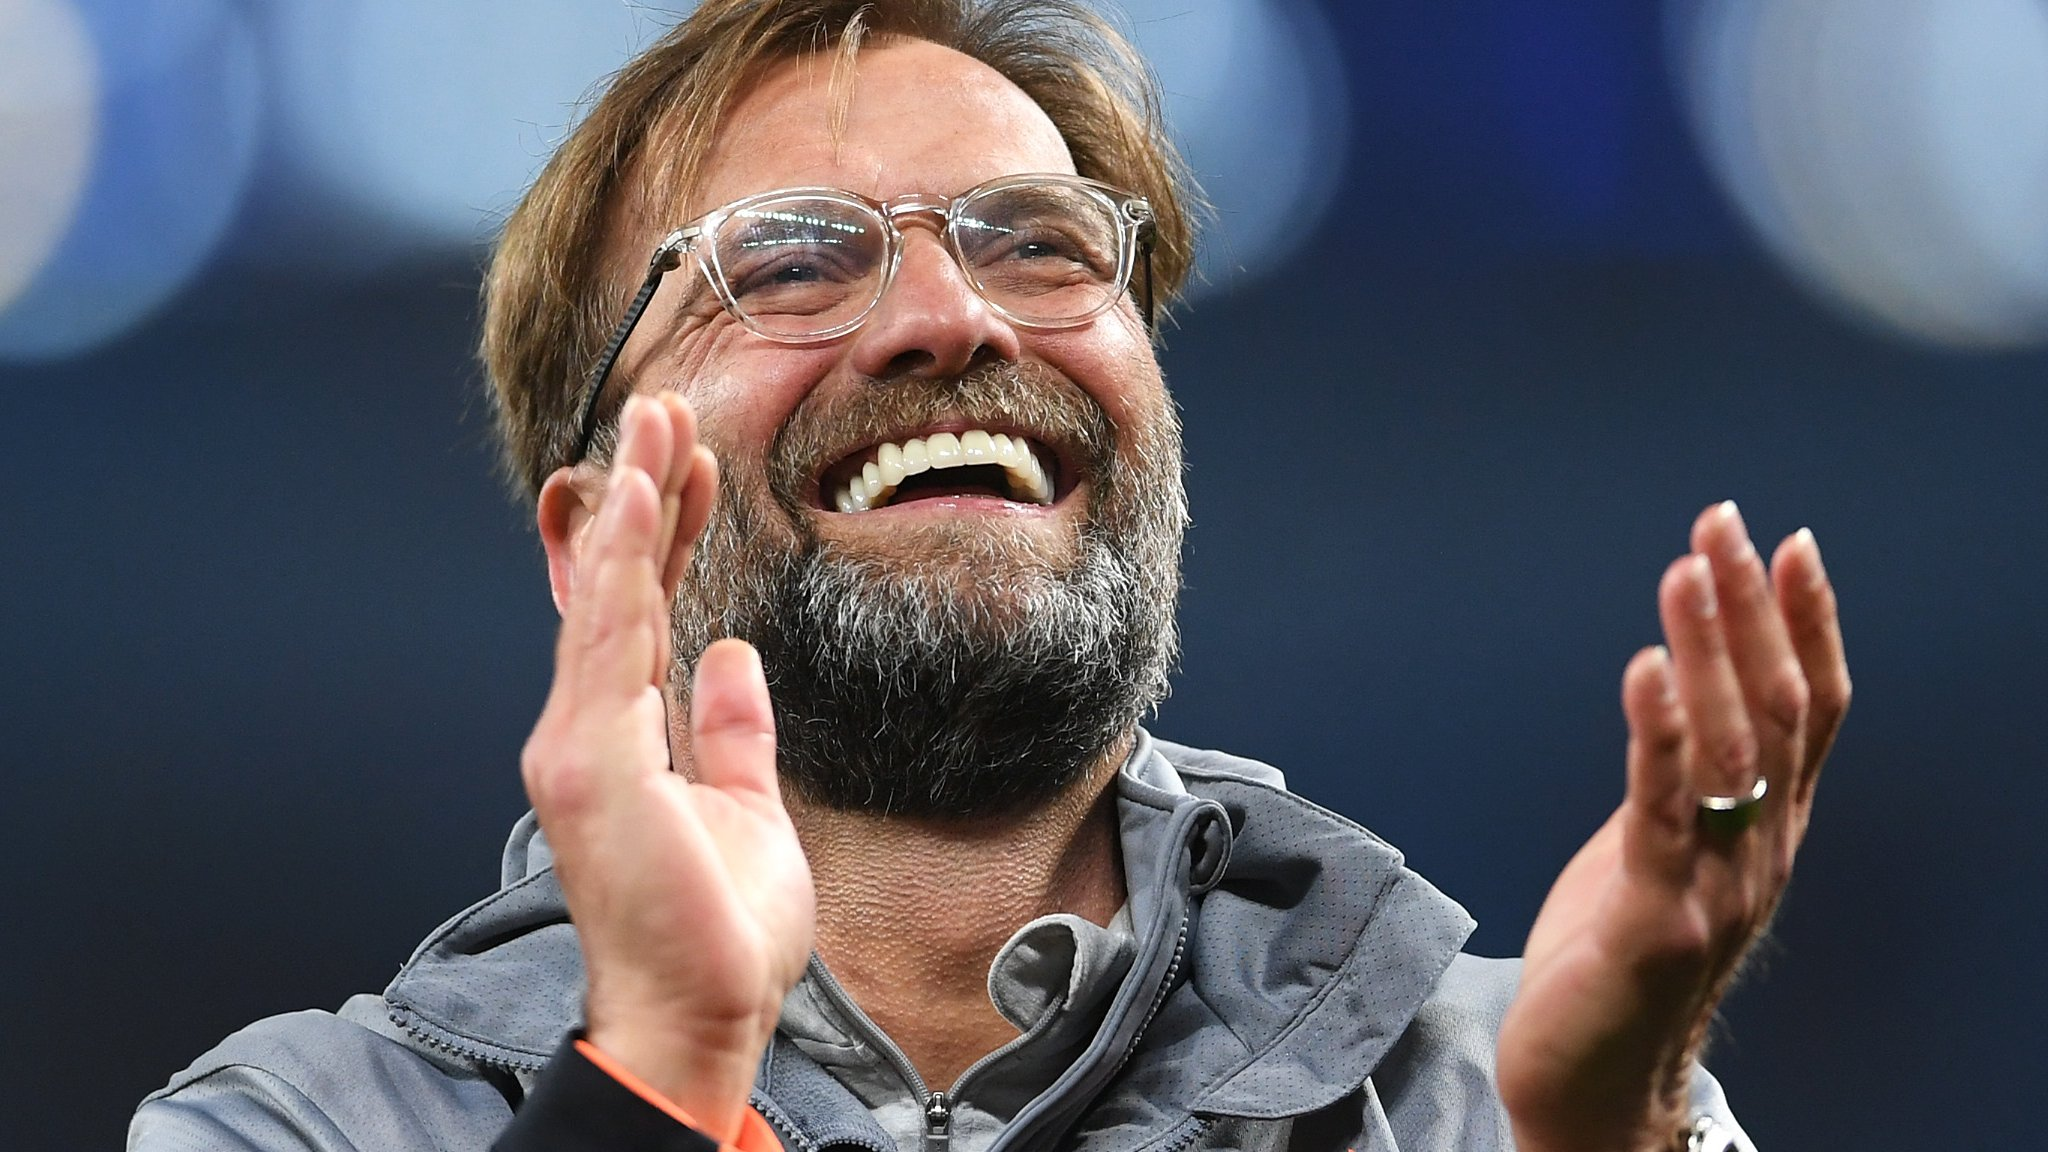 The making of Liverpool manager Jurgen Klopp